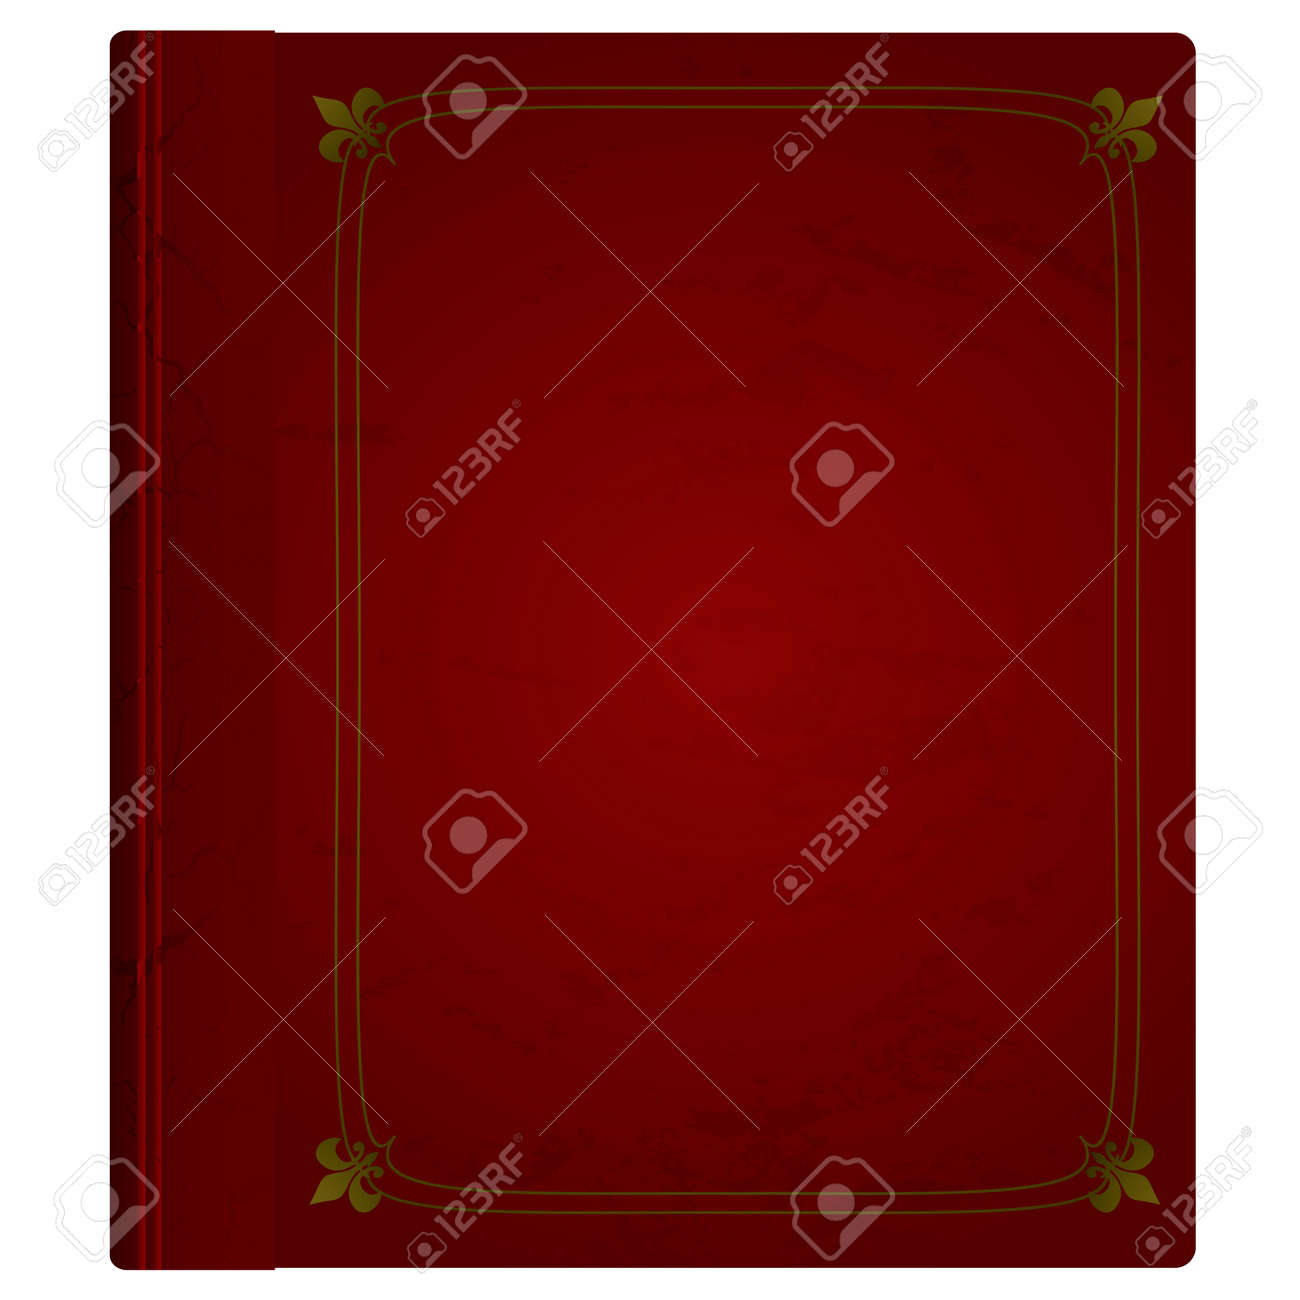 Maroon hardback book with leather cover and gold trim Stock Vector - 5772129